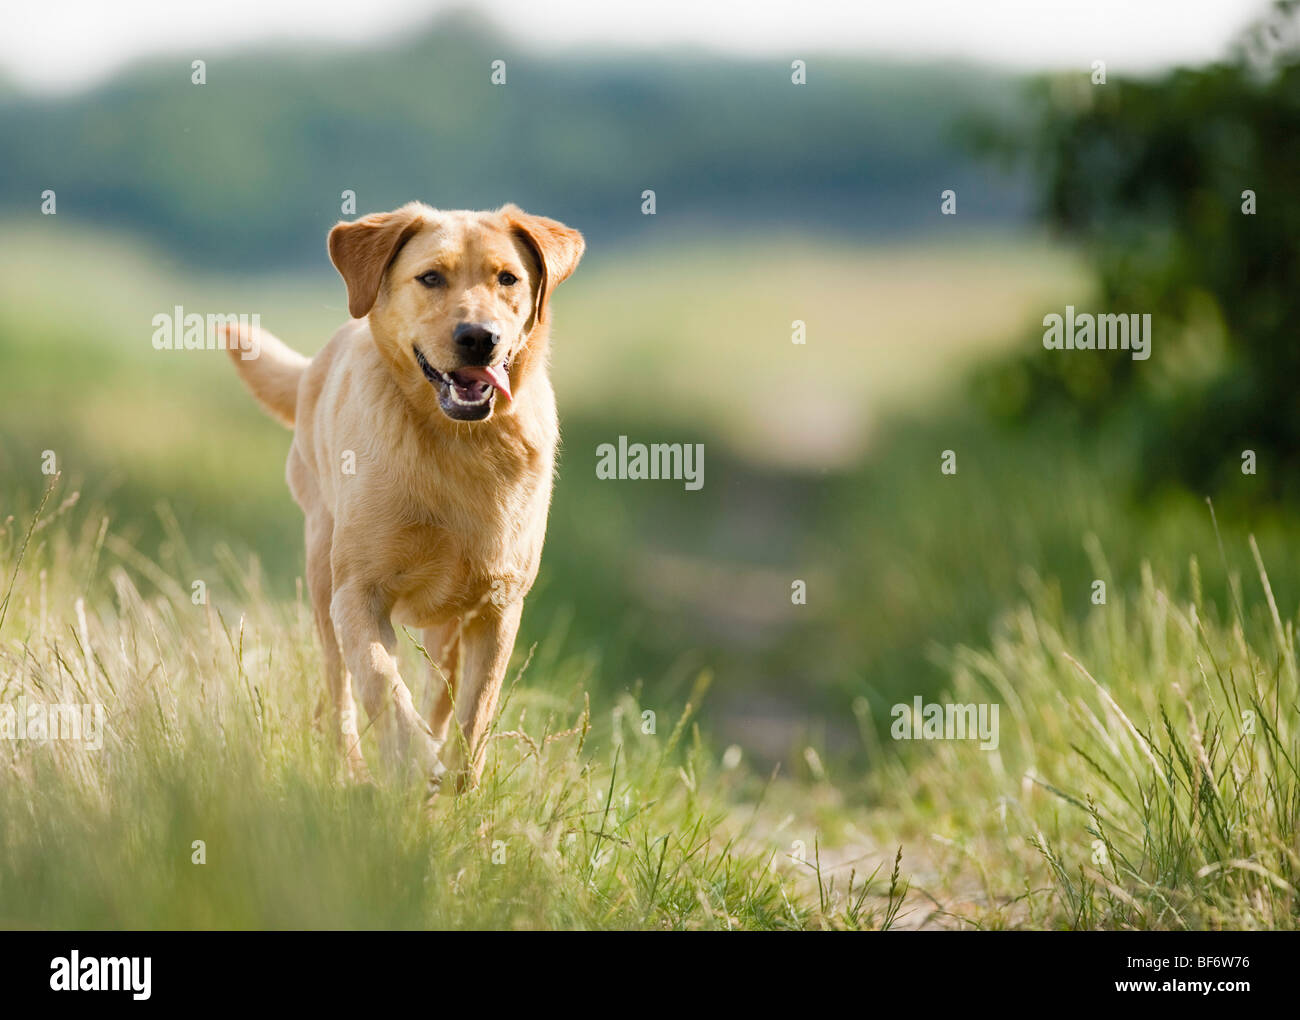 Labrador Retriever. Adult dog running in grass - Stock Image